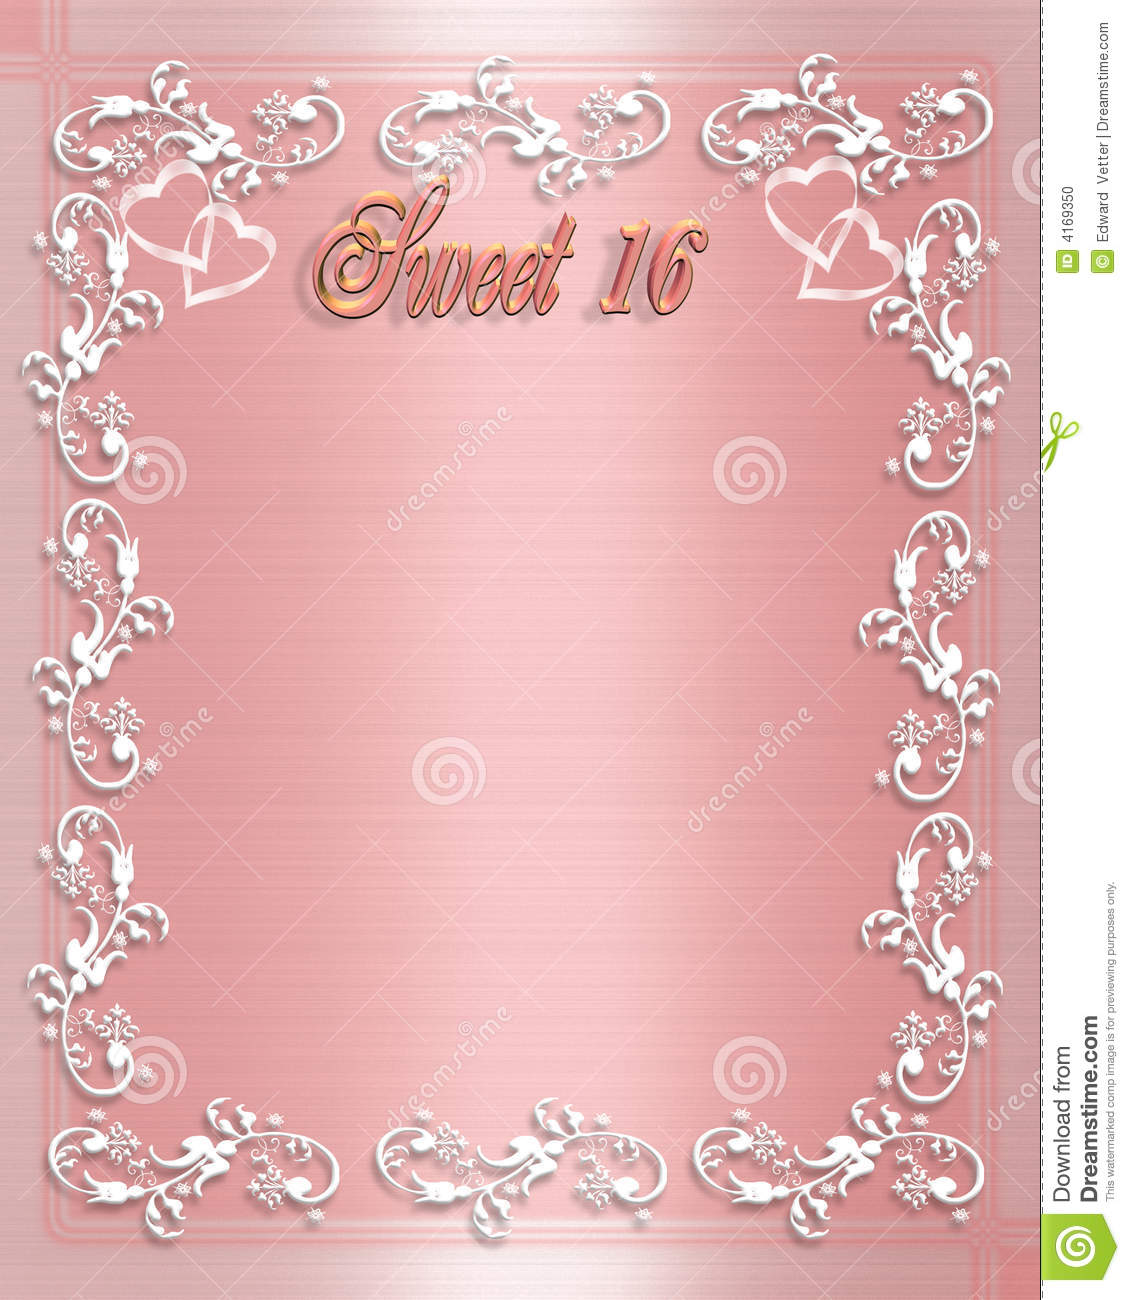 Birthday Invitation Background Of Pink Satin With White Border Design